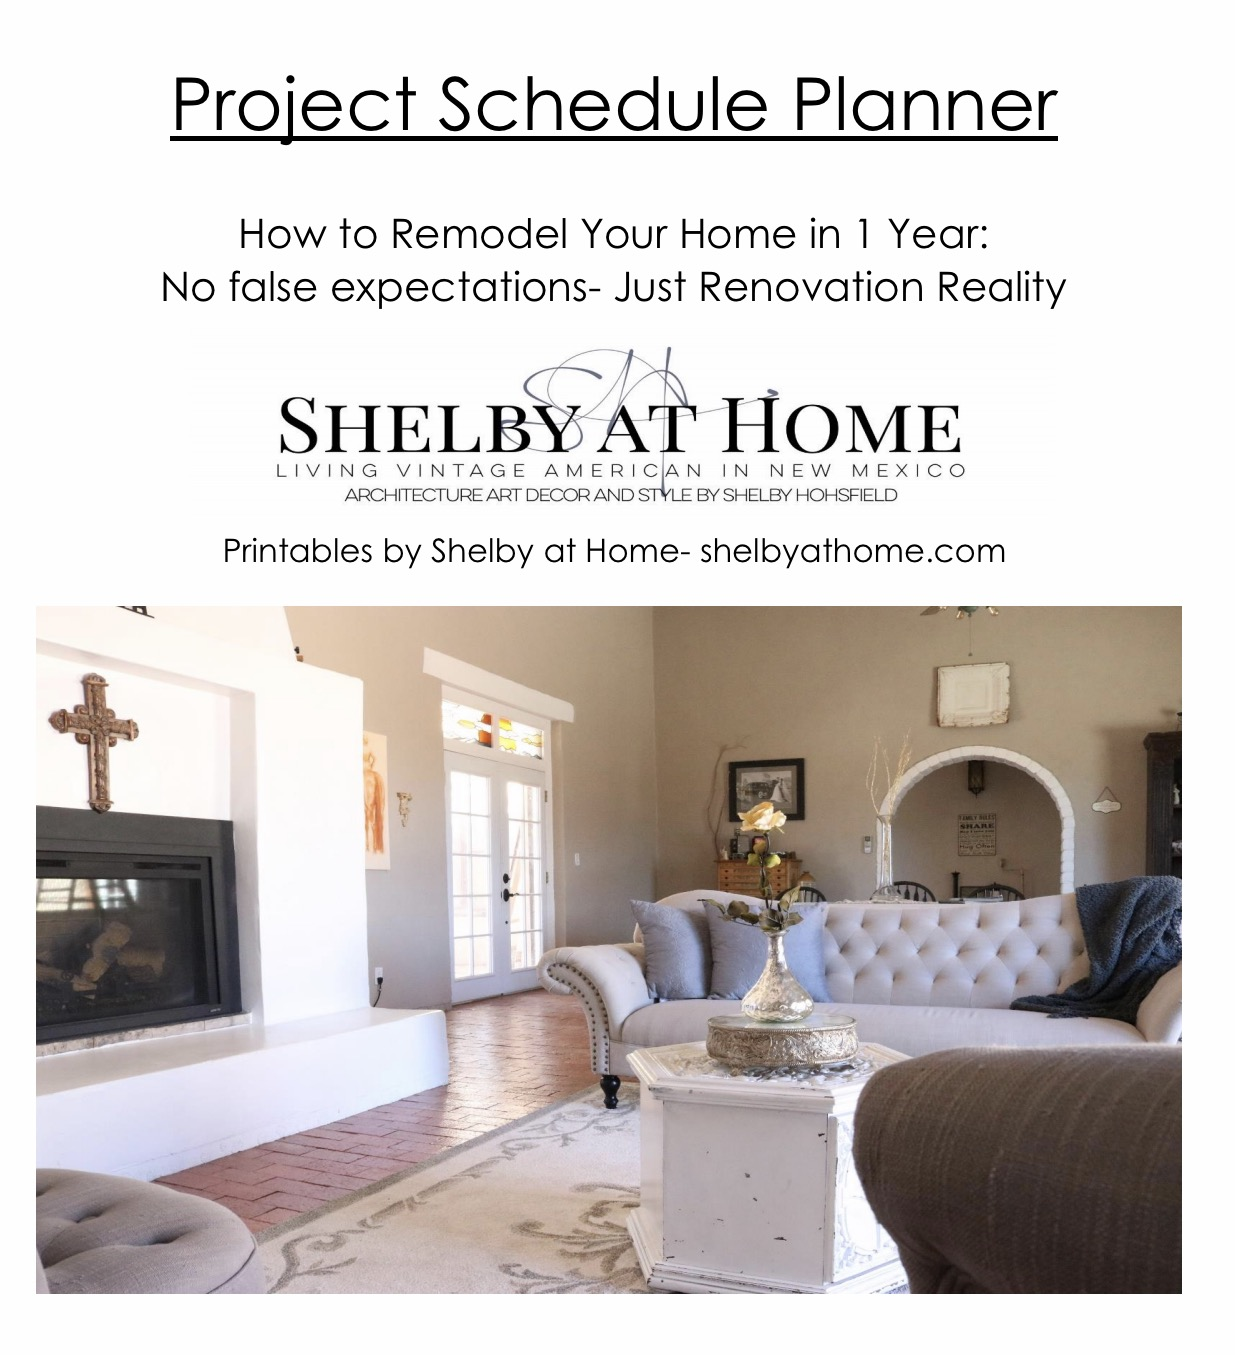 Yearly Project Planner Printable- shelbyathome.com